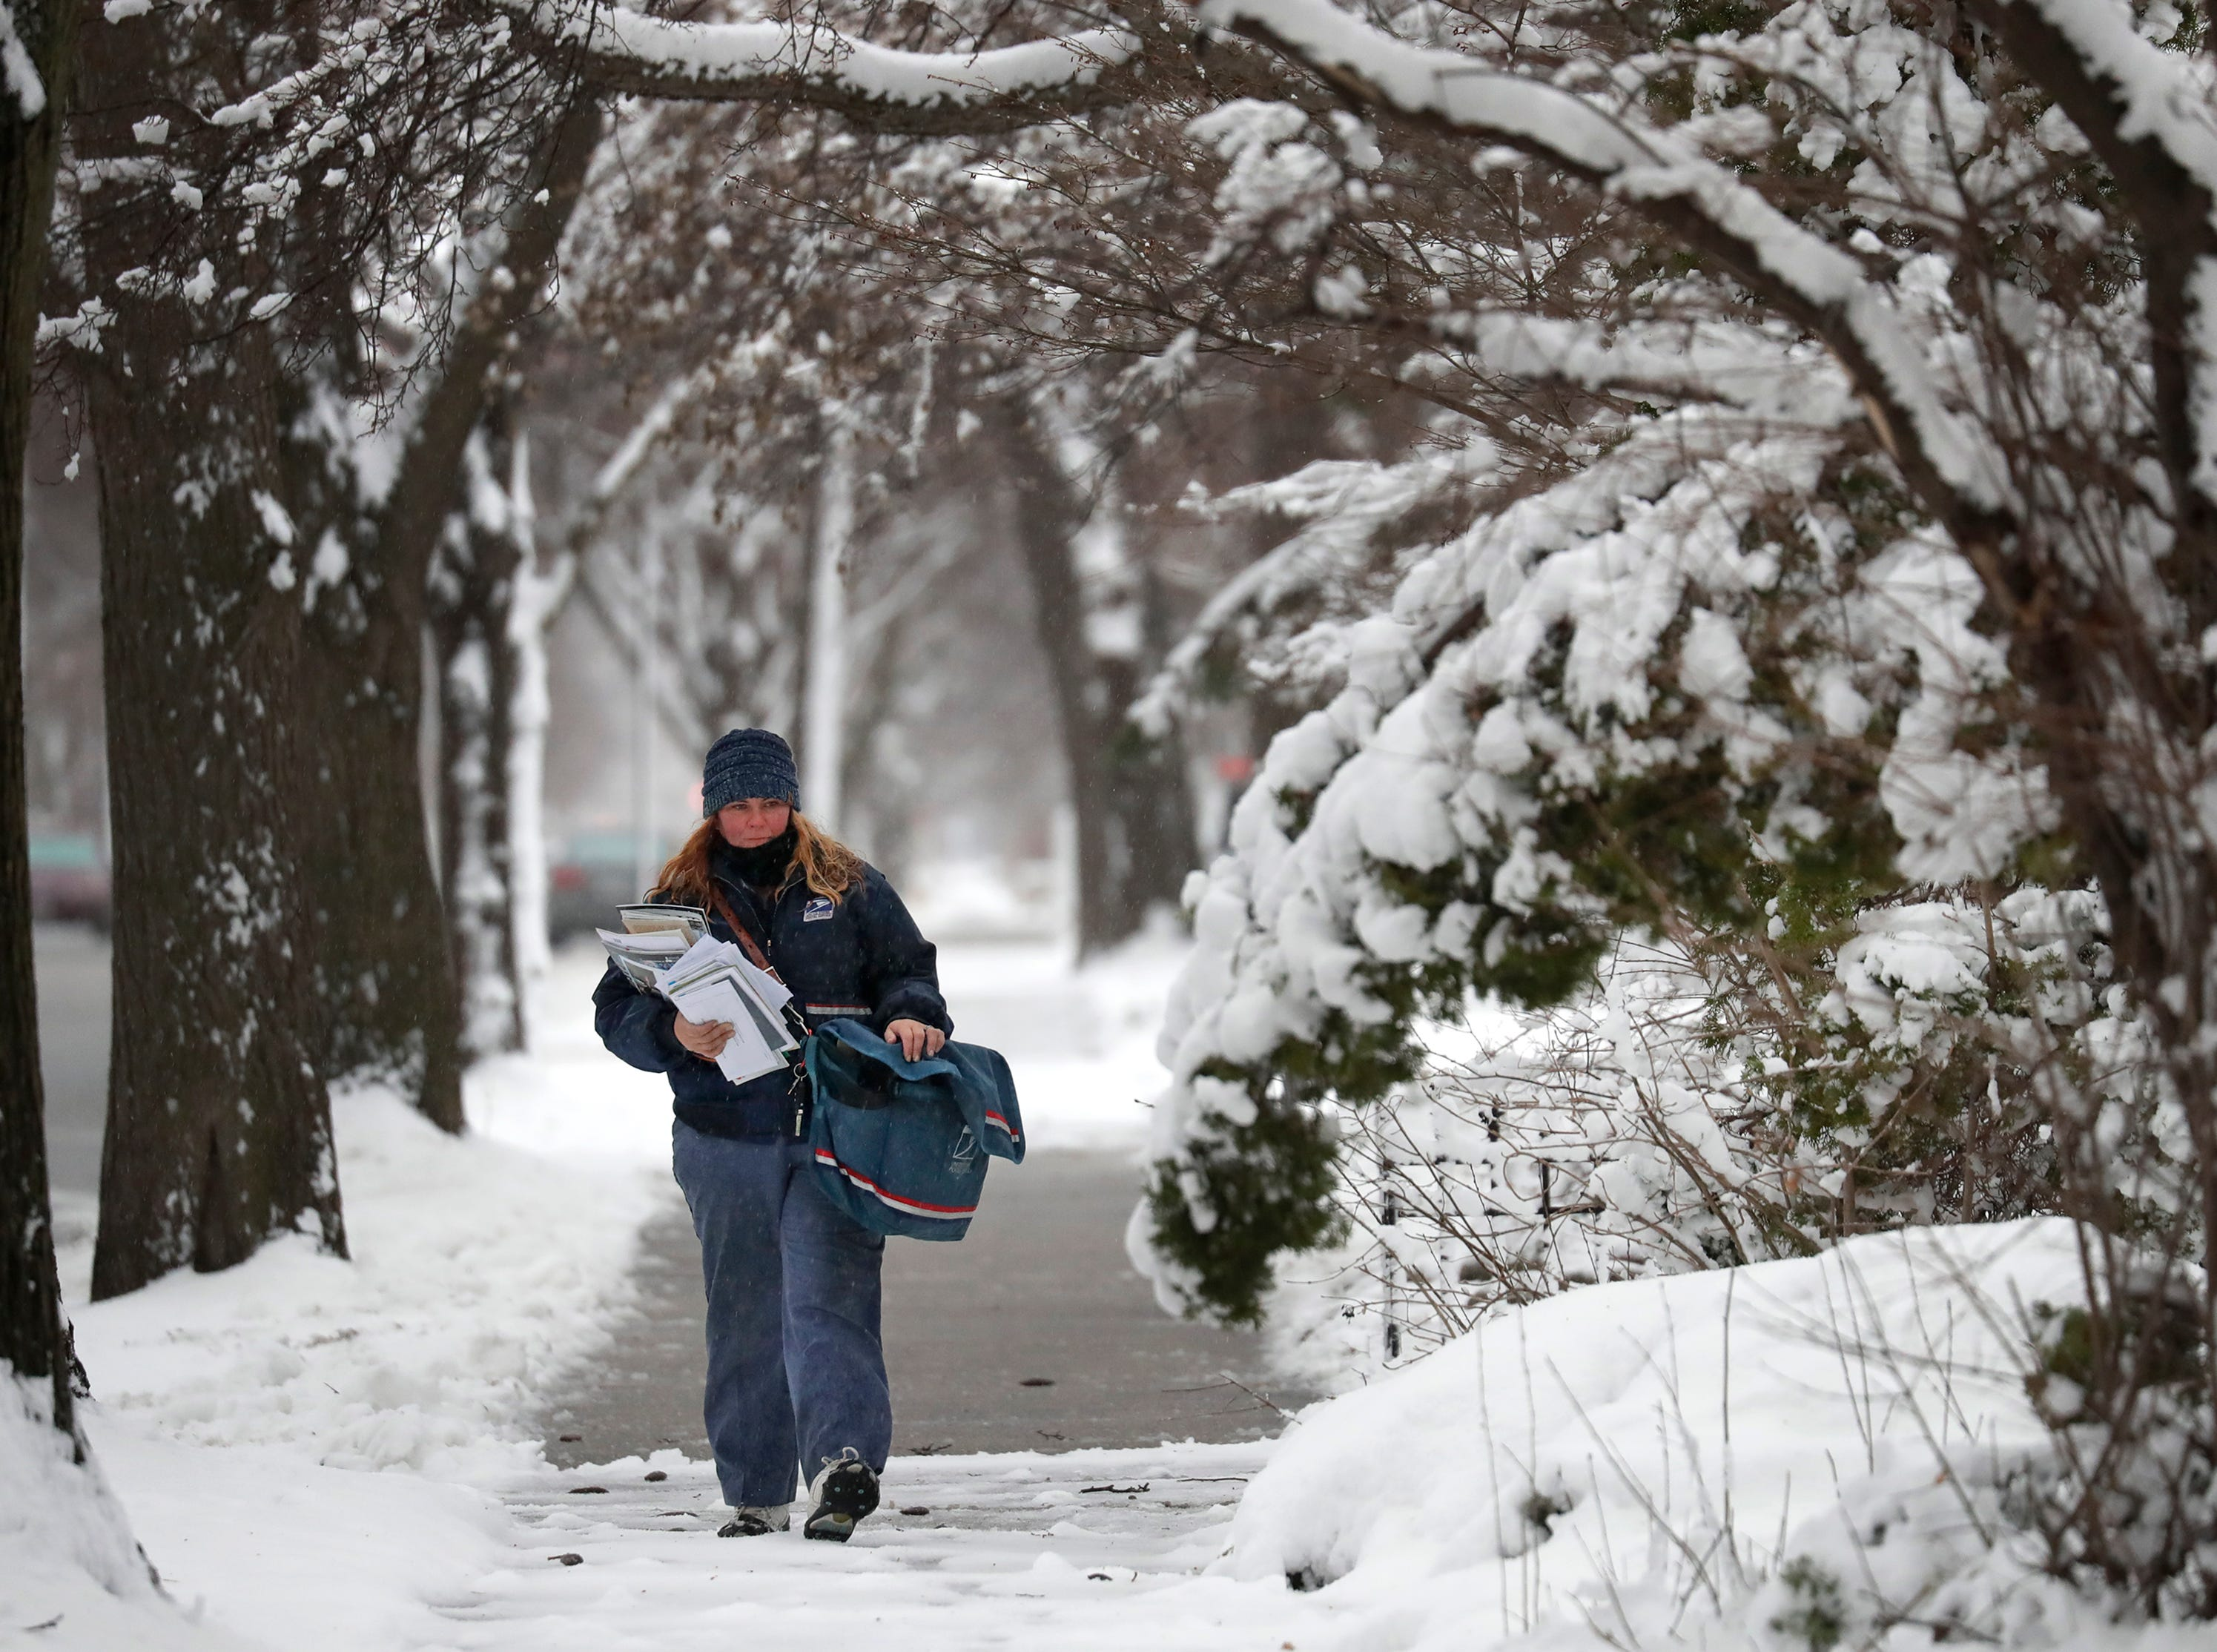 Ginny Klein, a city letter carrier assistant, delivers mail in windy sleeting conditions during a spring snow storm Thursday, April 11, 2019, in Oshkosh, Wis. Dan Powers/USA TODAY NETWORK-Wisconsin